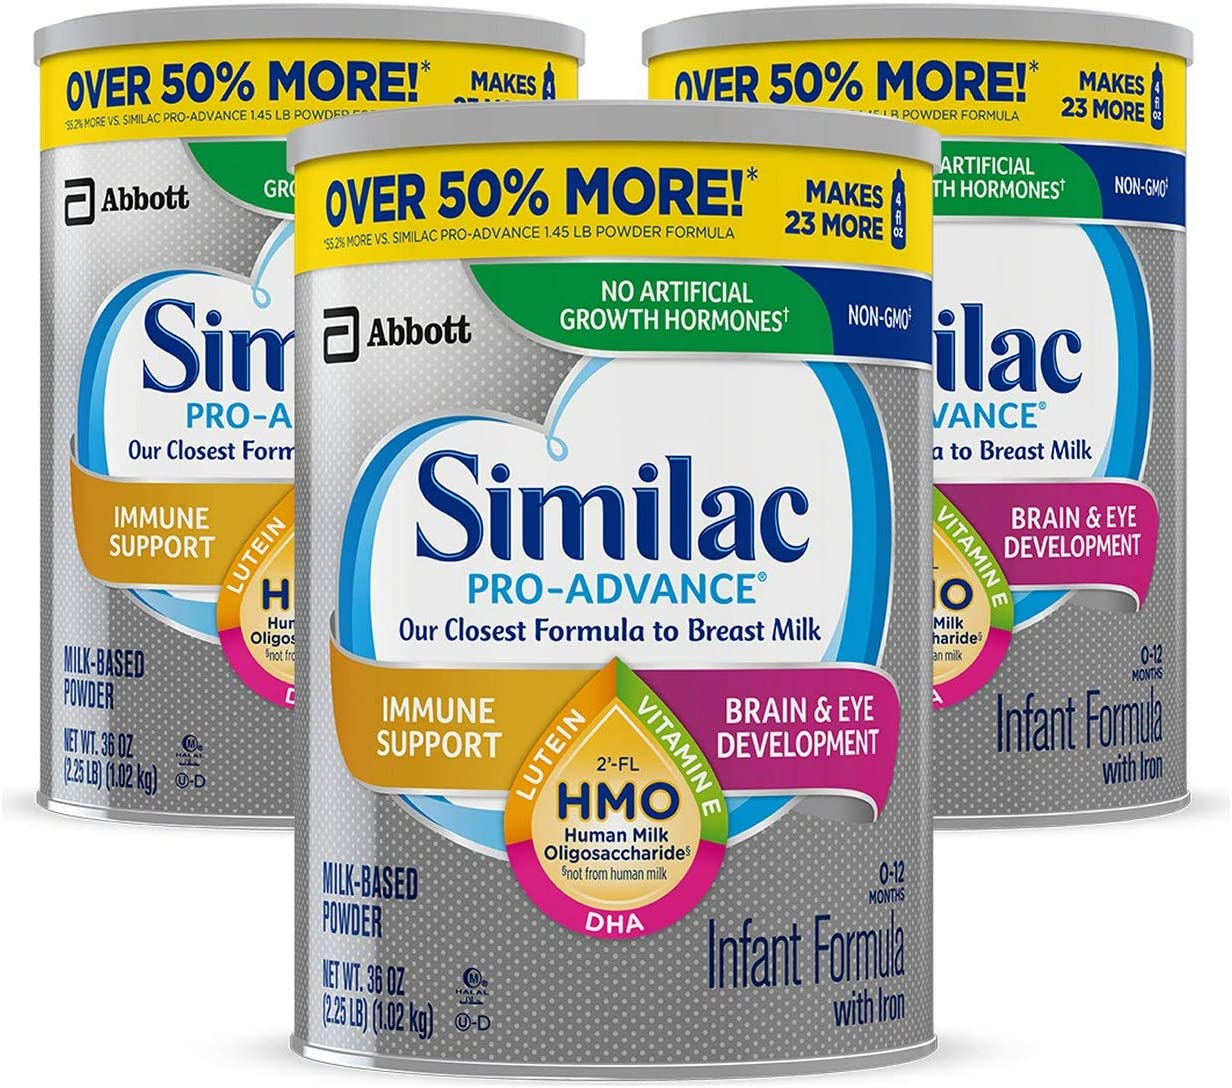 Similac Pro-Advance Non-GMO Infant Formula with Iron, with 2'-FL HMO, for Immune...